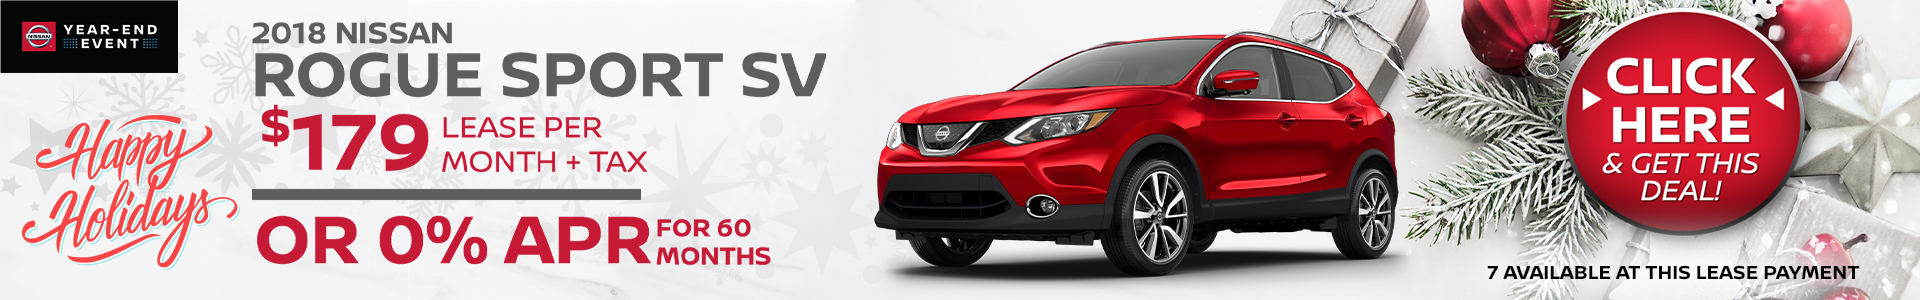 Mossy Nissan - Nissan Rogue Sport $149 Lease